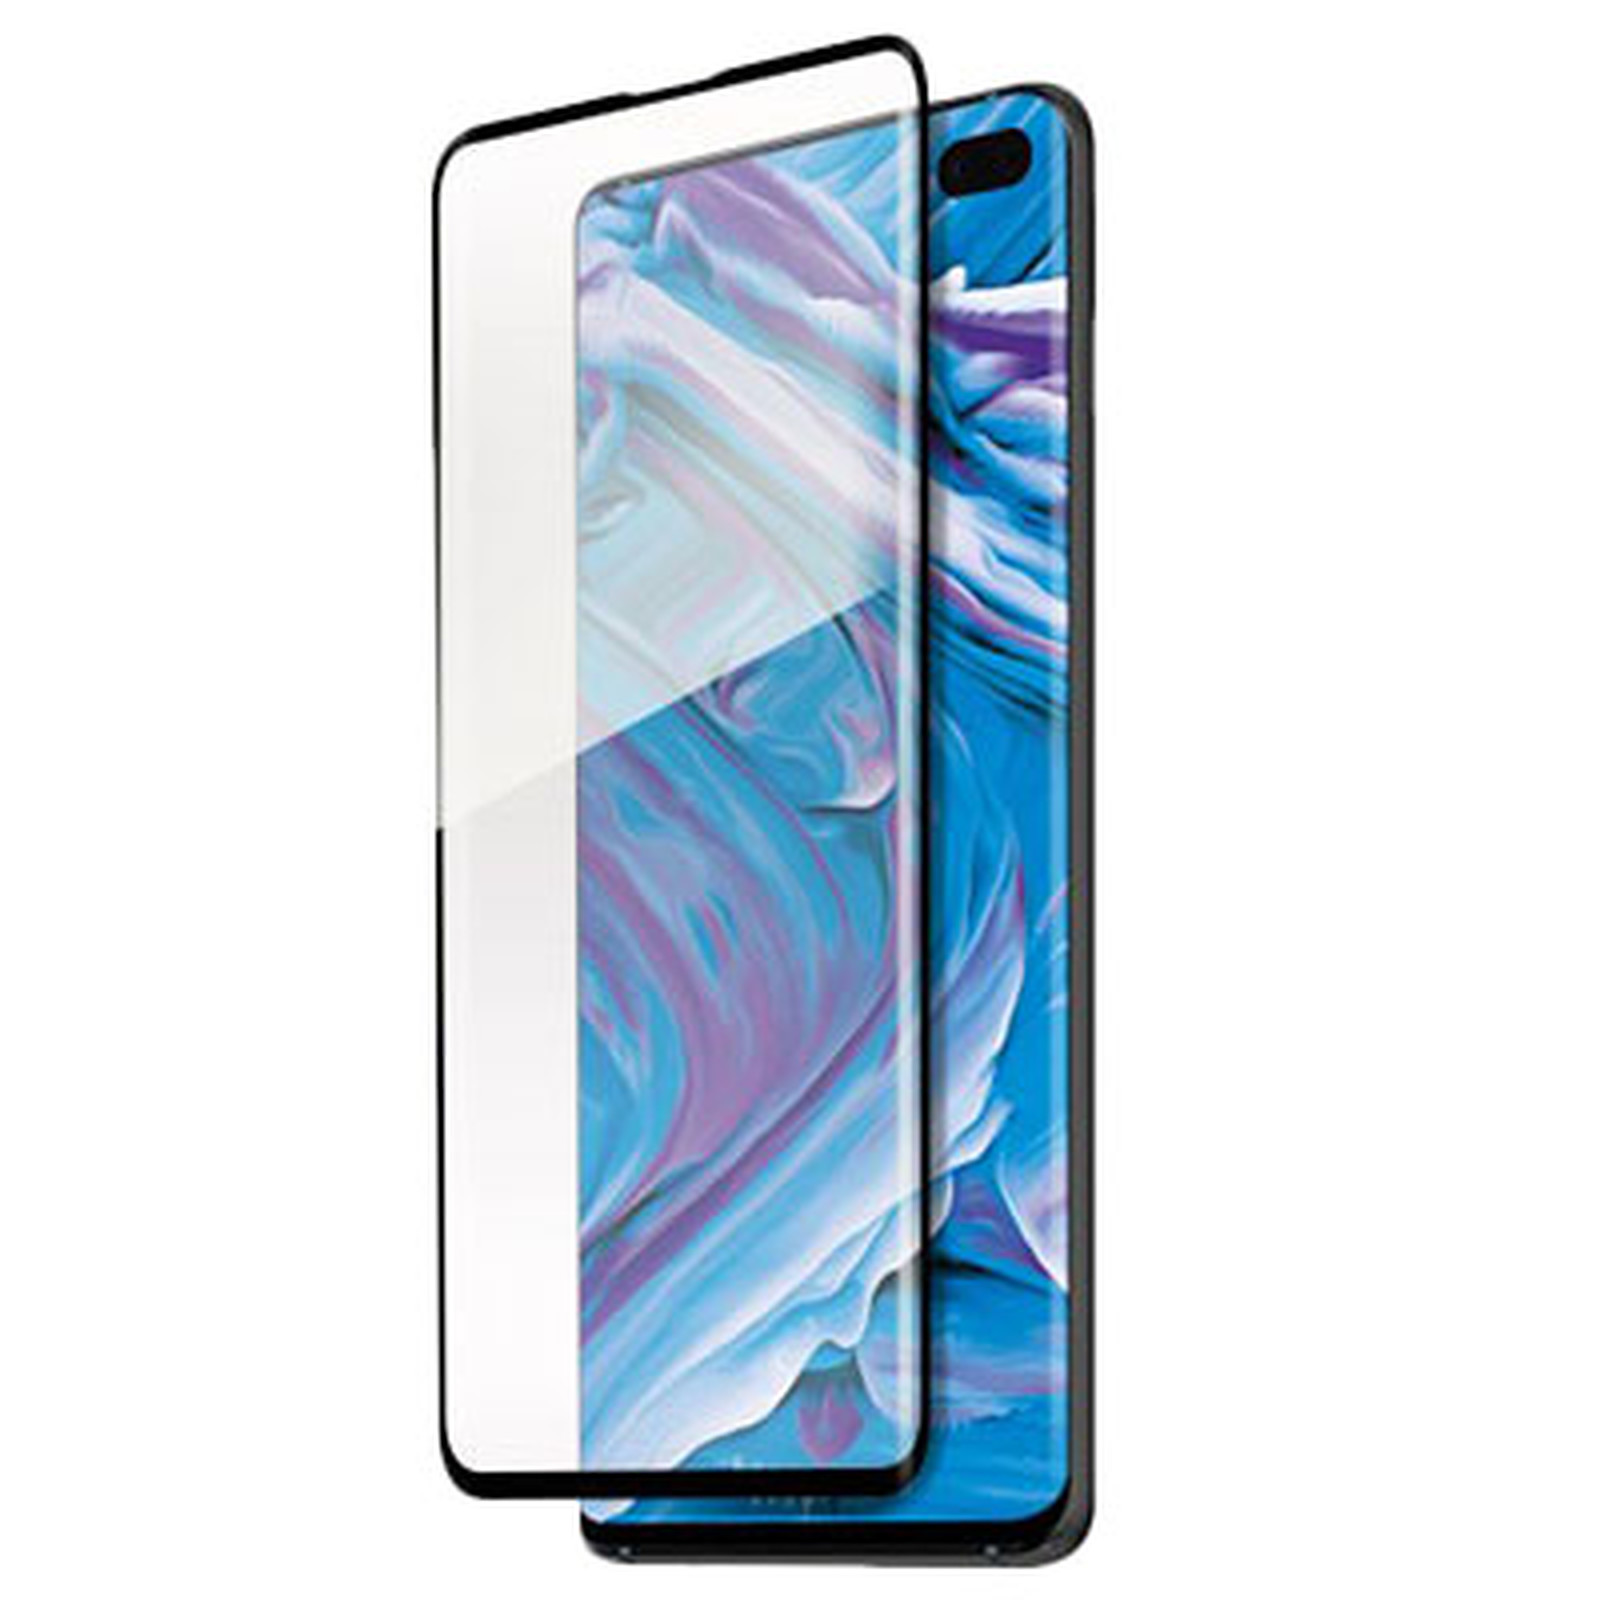 Thor FS Glass With Applicator For Galaxy S10+